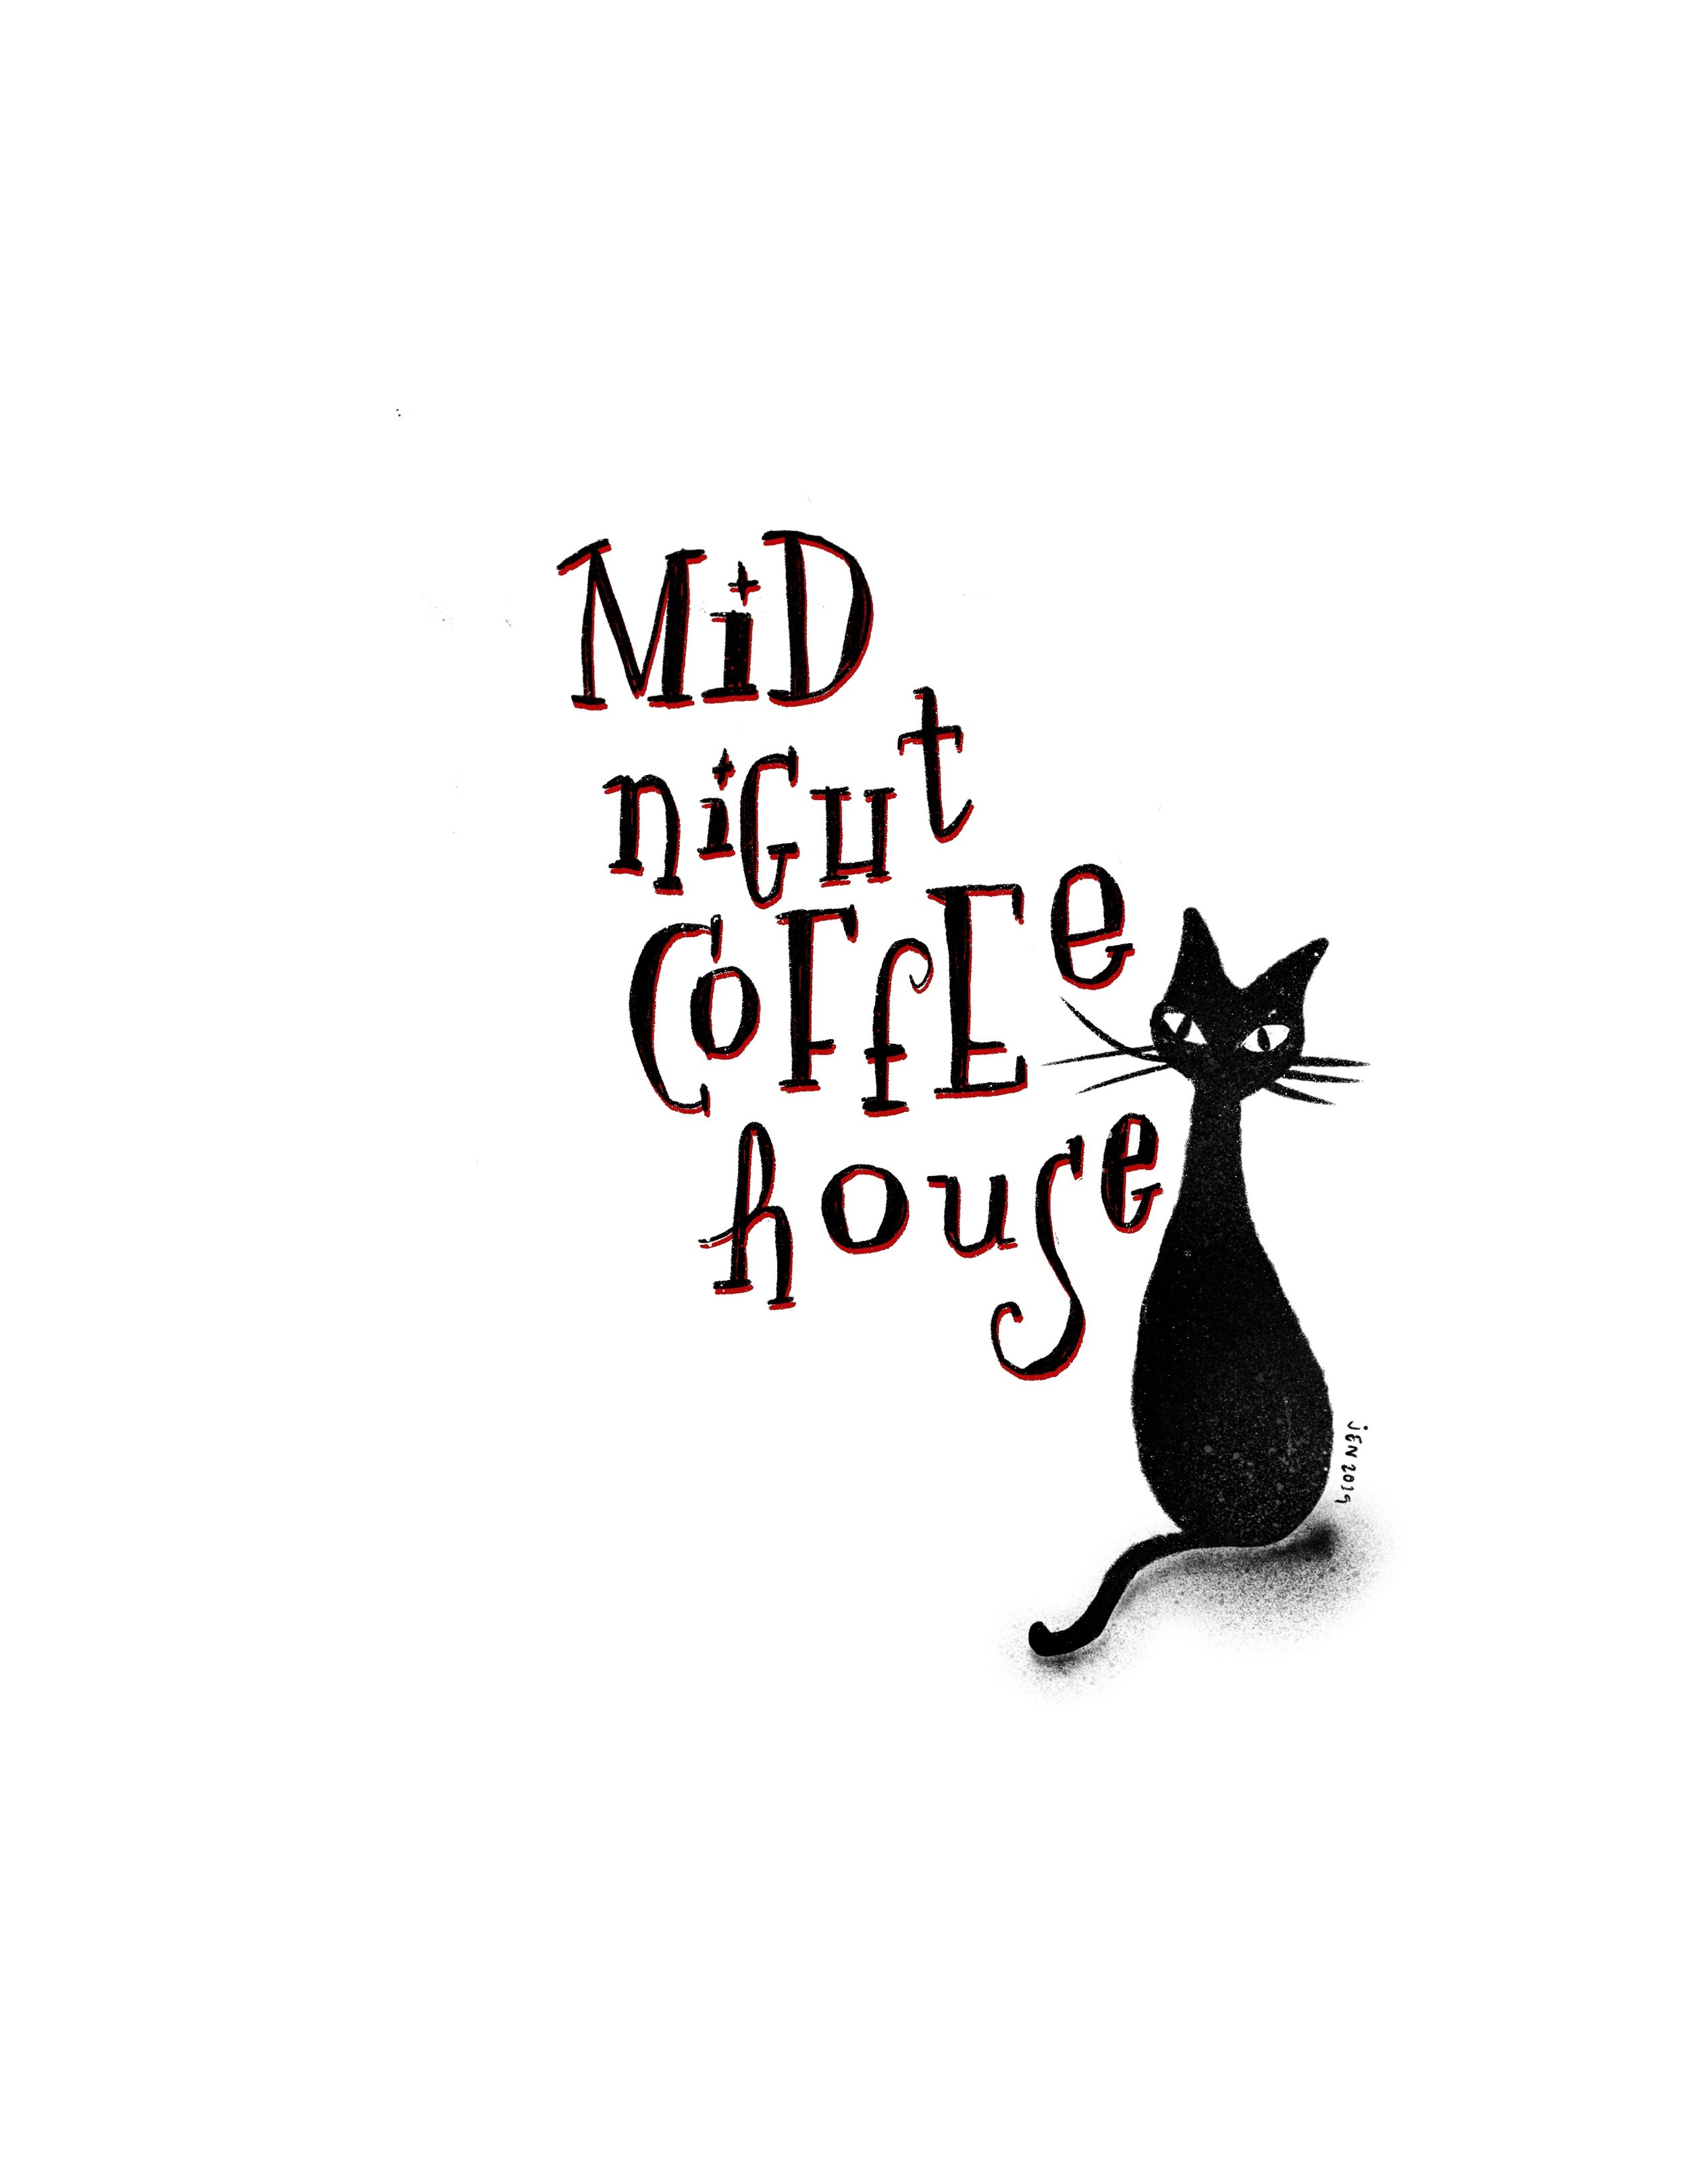 I personally love the look of the cat on it's own, with the text in black and red. It gives the otherwise fun and bright charm of the retro look almost autumnal and spooky feels.